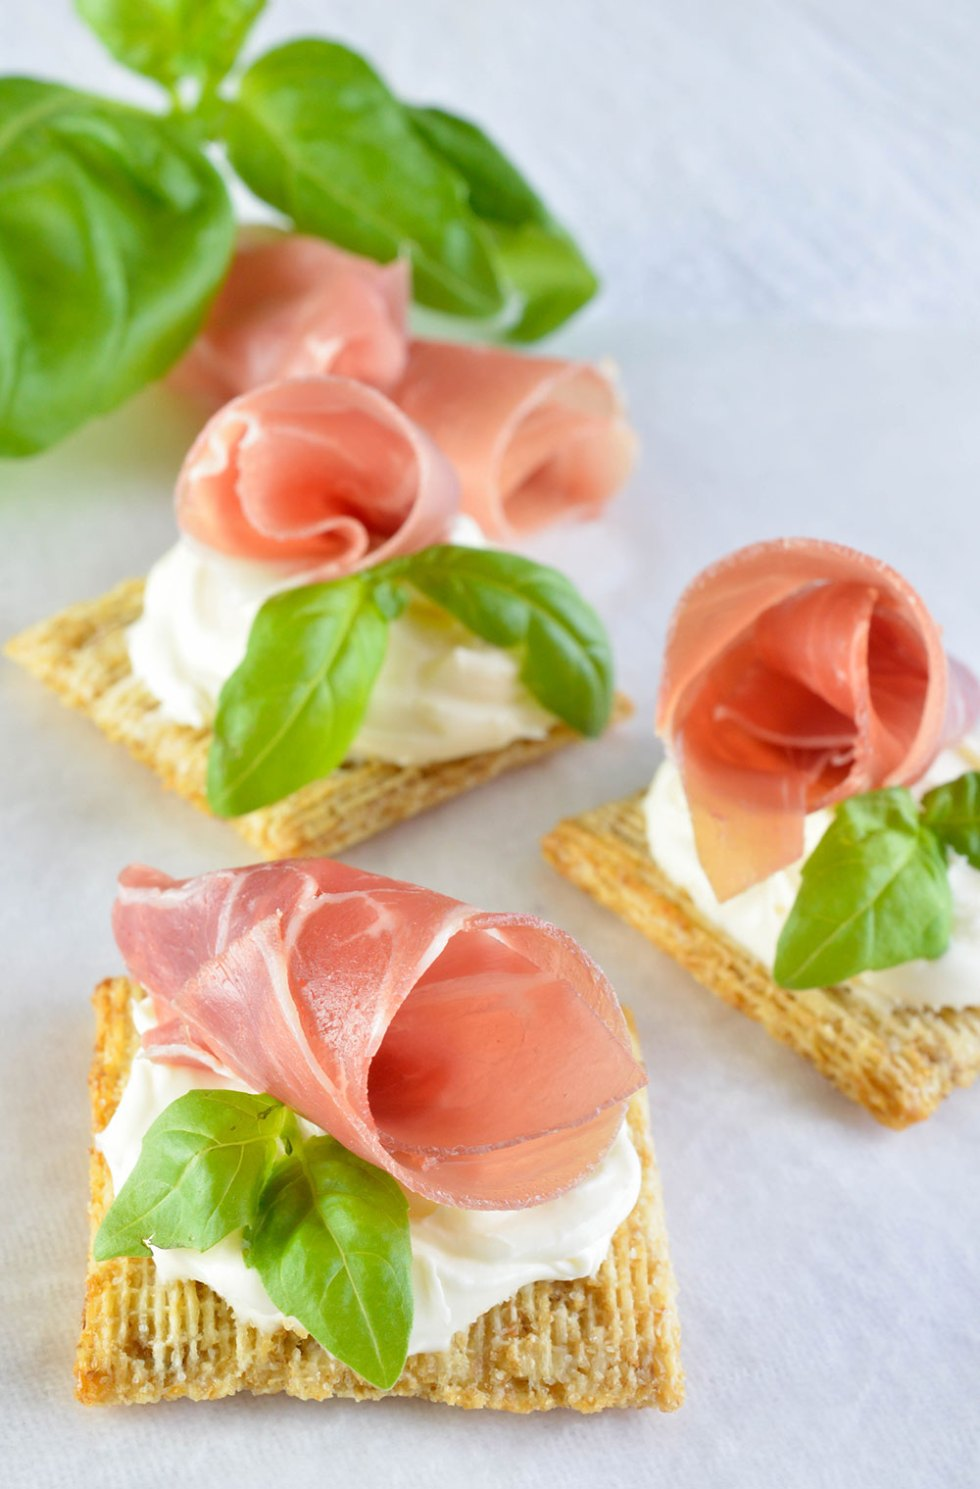 Easy Snack Recipe with Prosciutto, Basil and Mascarpone on Triscuit Crackers - This quick and simple appetizer or snack is impressive and delicious! With just 4 ingredients!